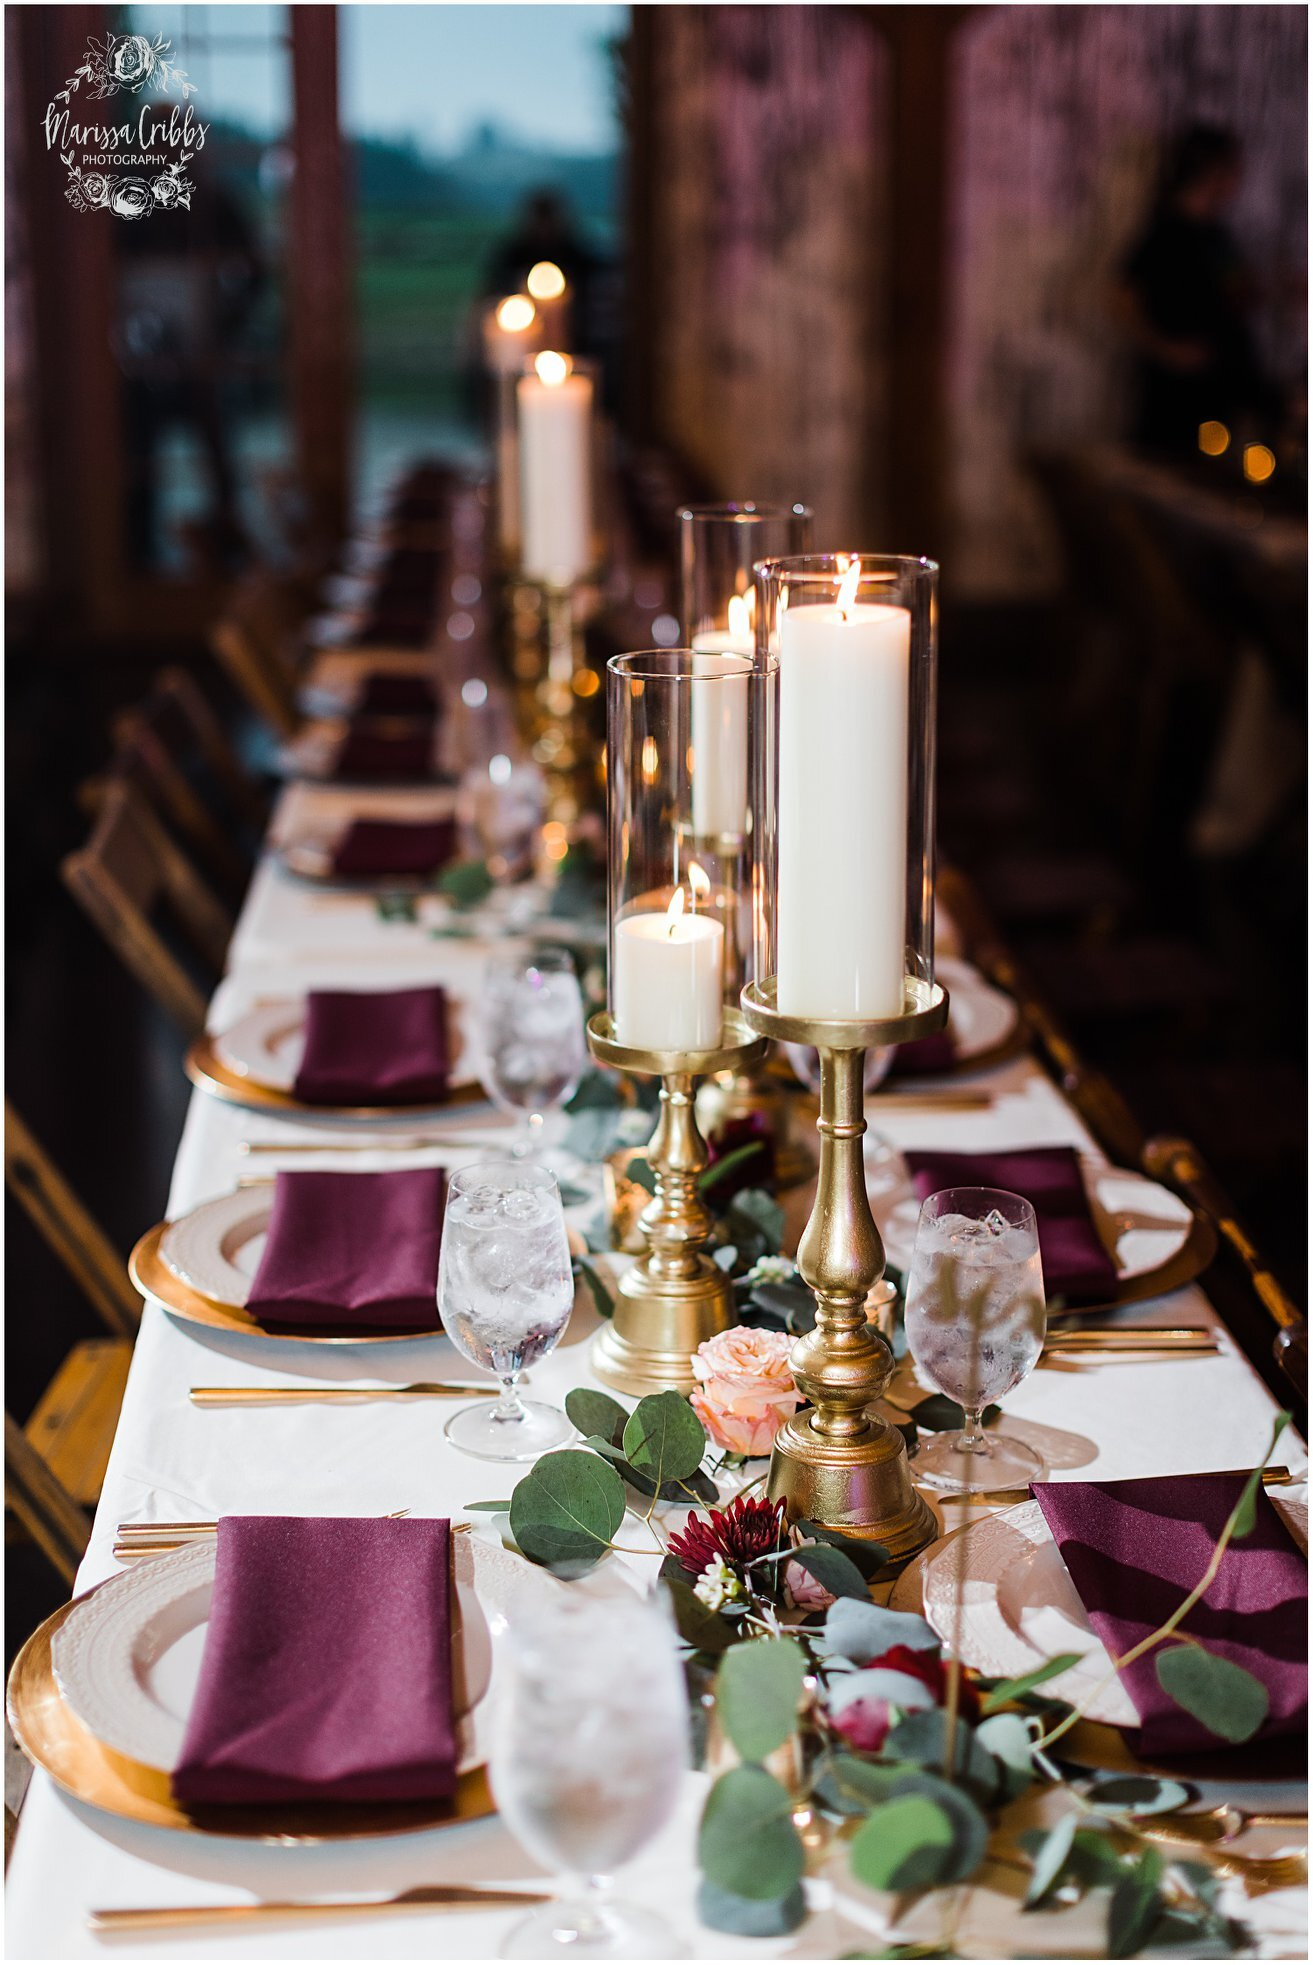 Guest Table - Marrisa Cribbs Photography